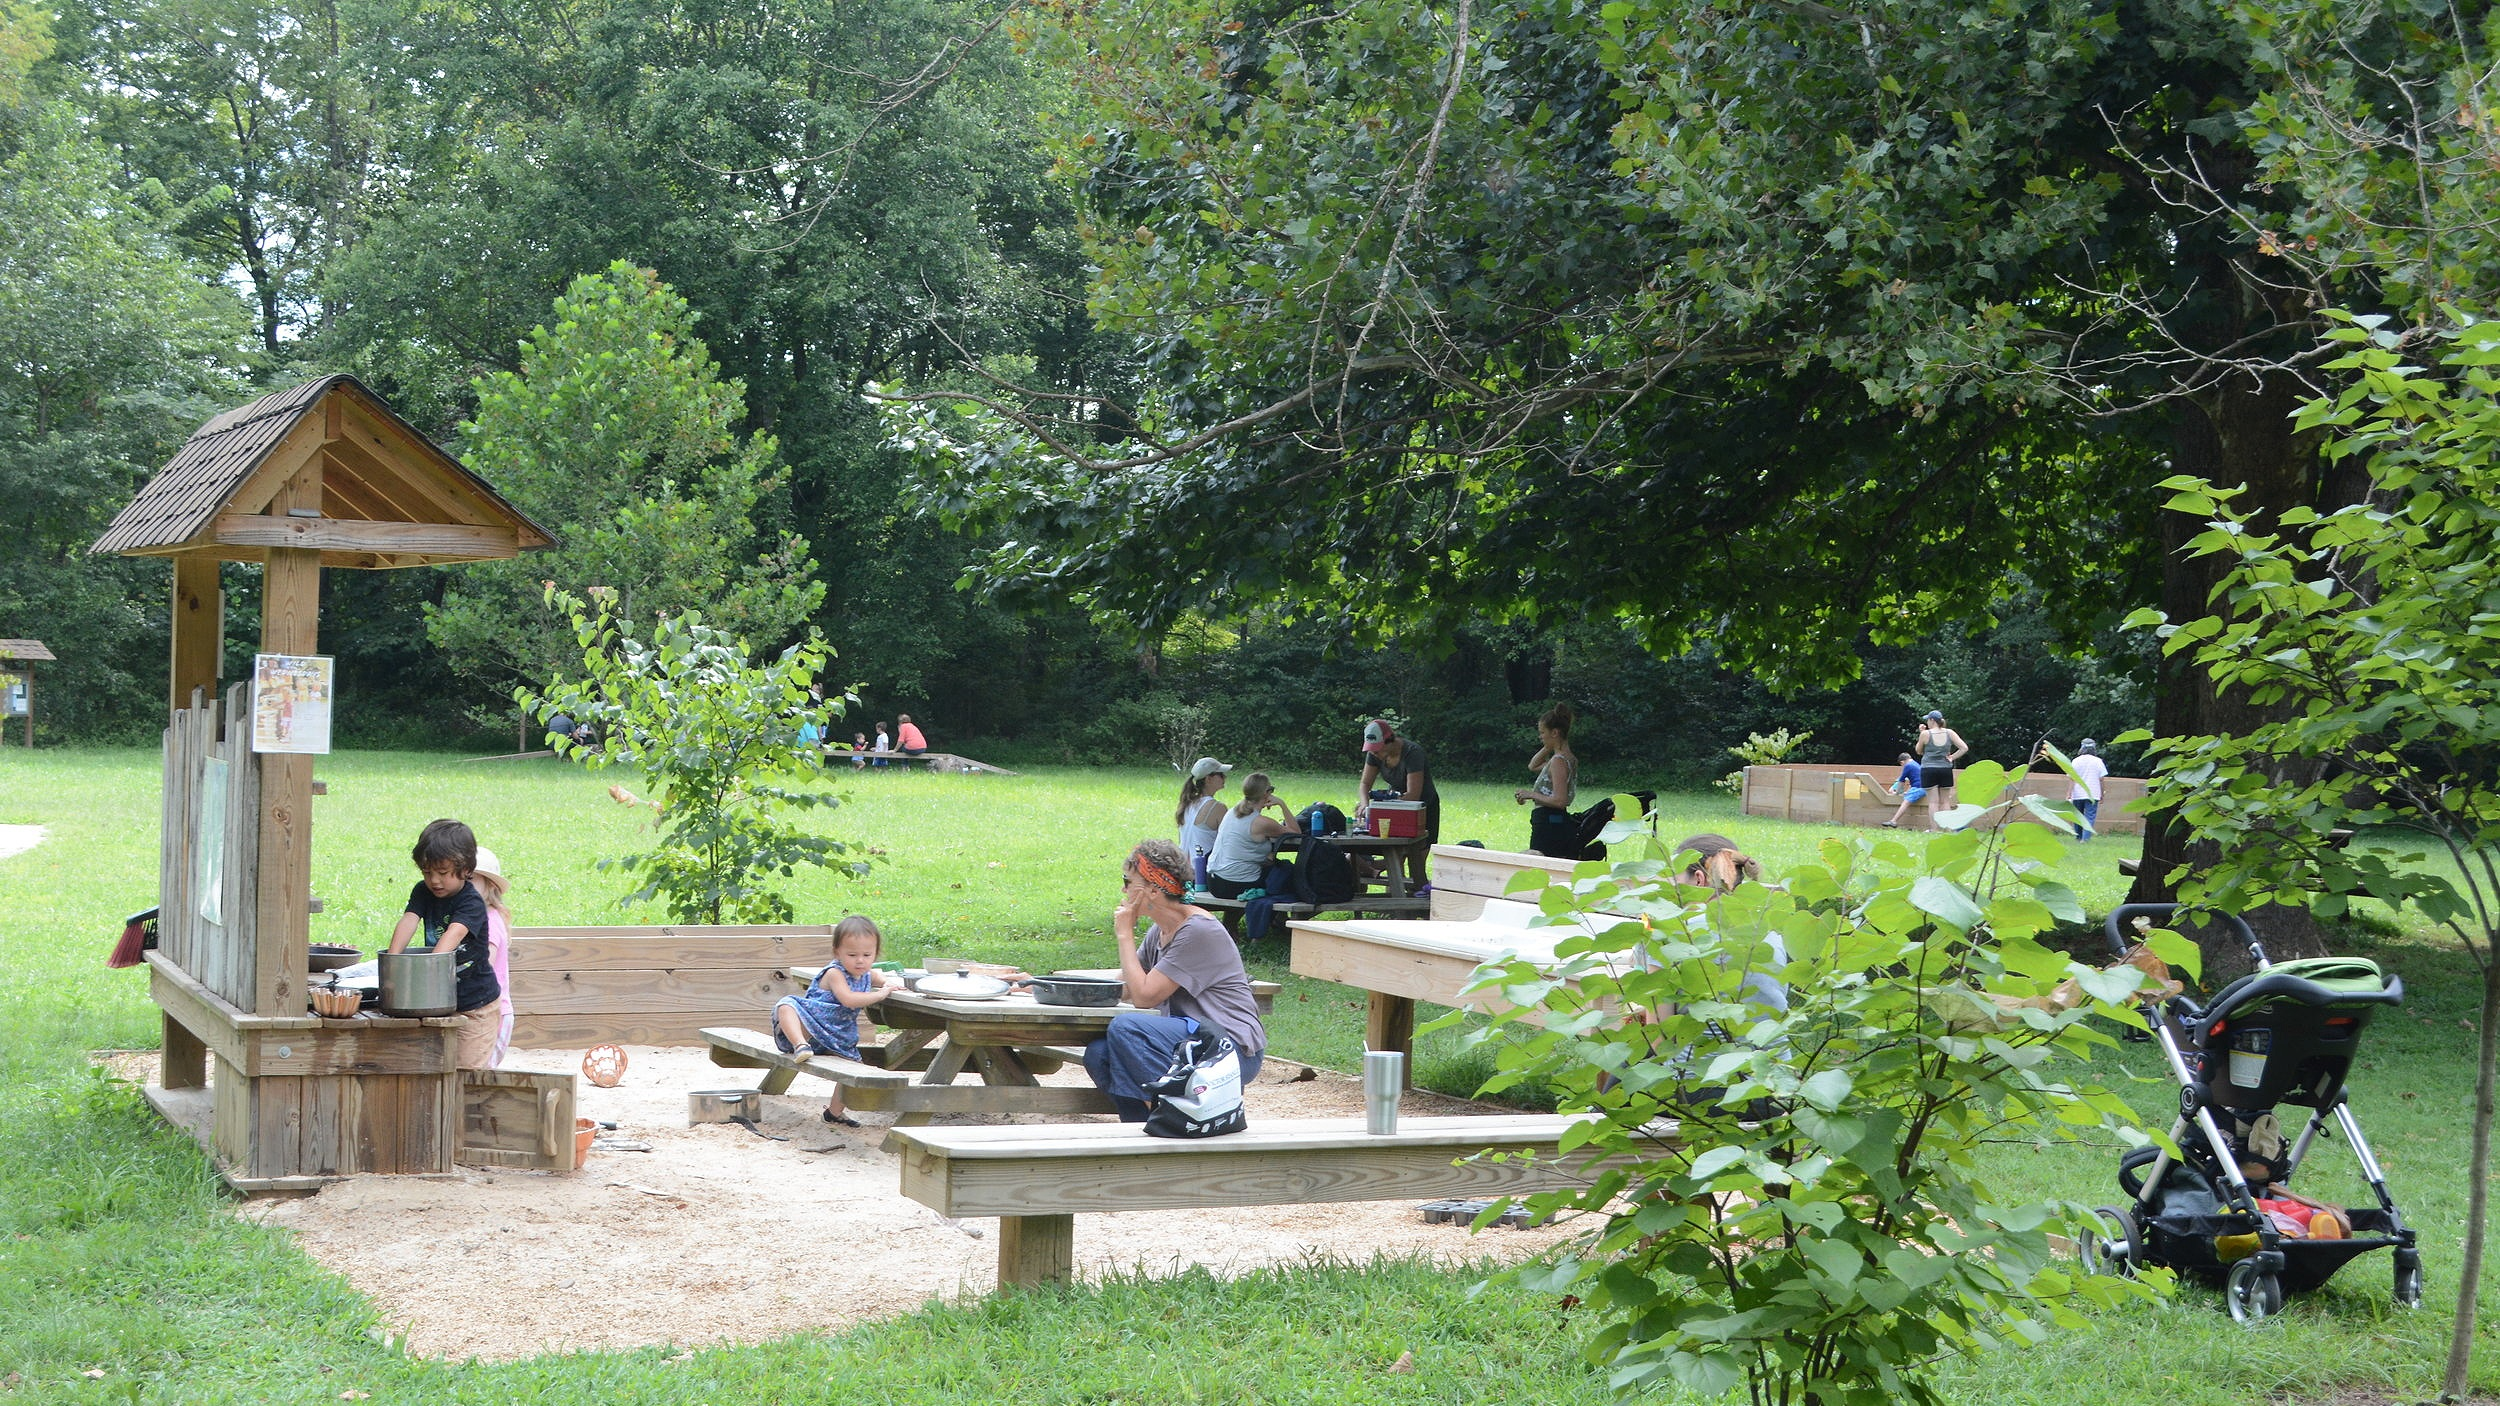 The mud kitchen was thoughtfully put near picnic tables under a shade tree.